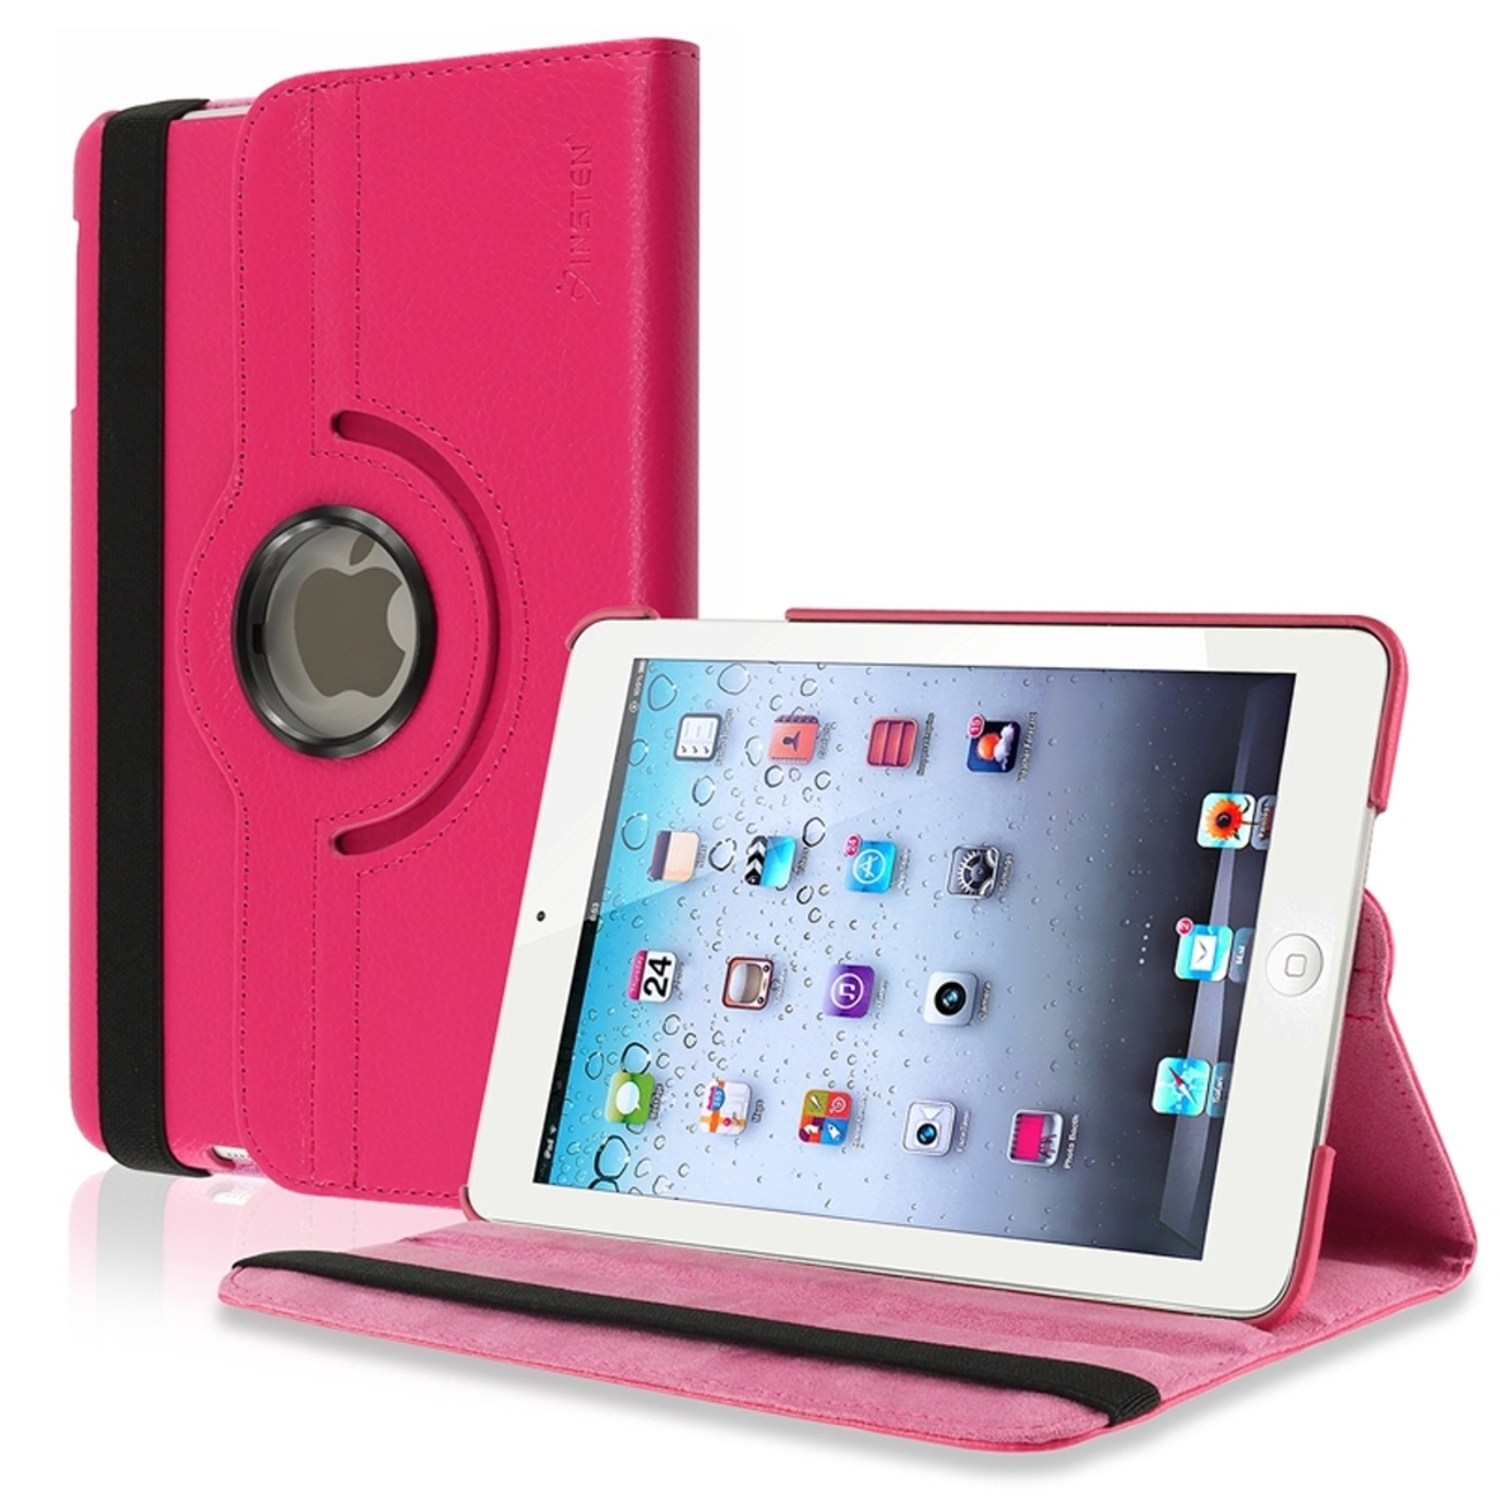 Insten 360-degree Swivel Leather Case For Apple iPad Mini 3 3rd / 1 1st / 2 2nd with Retina Display, Hot Pink